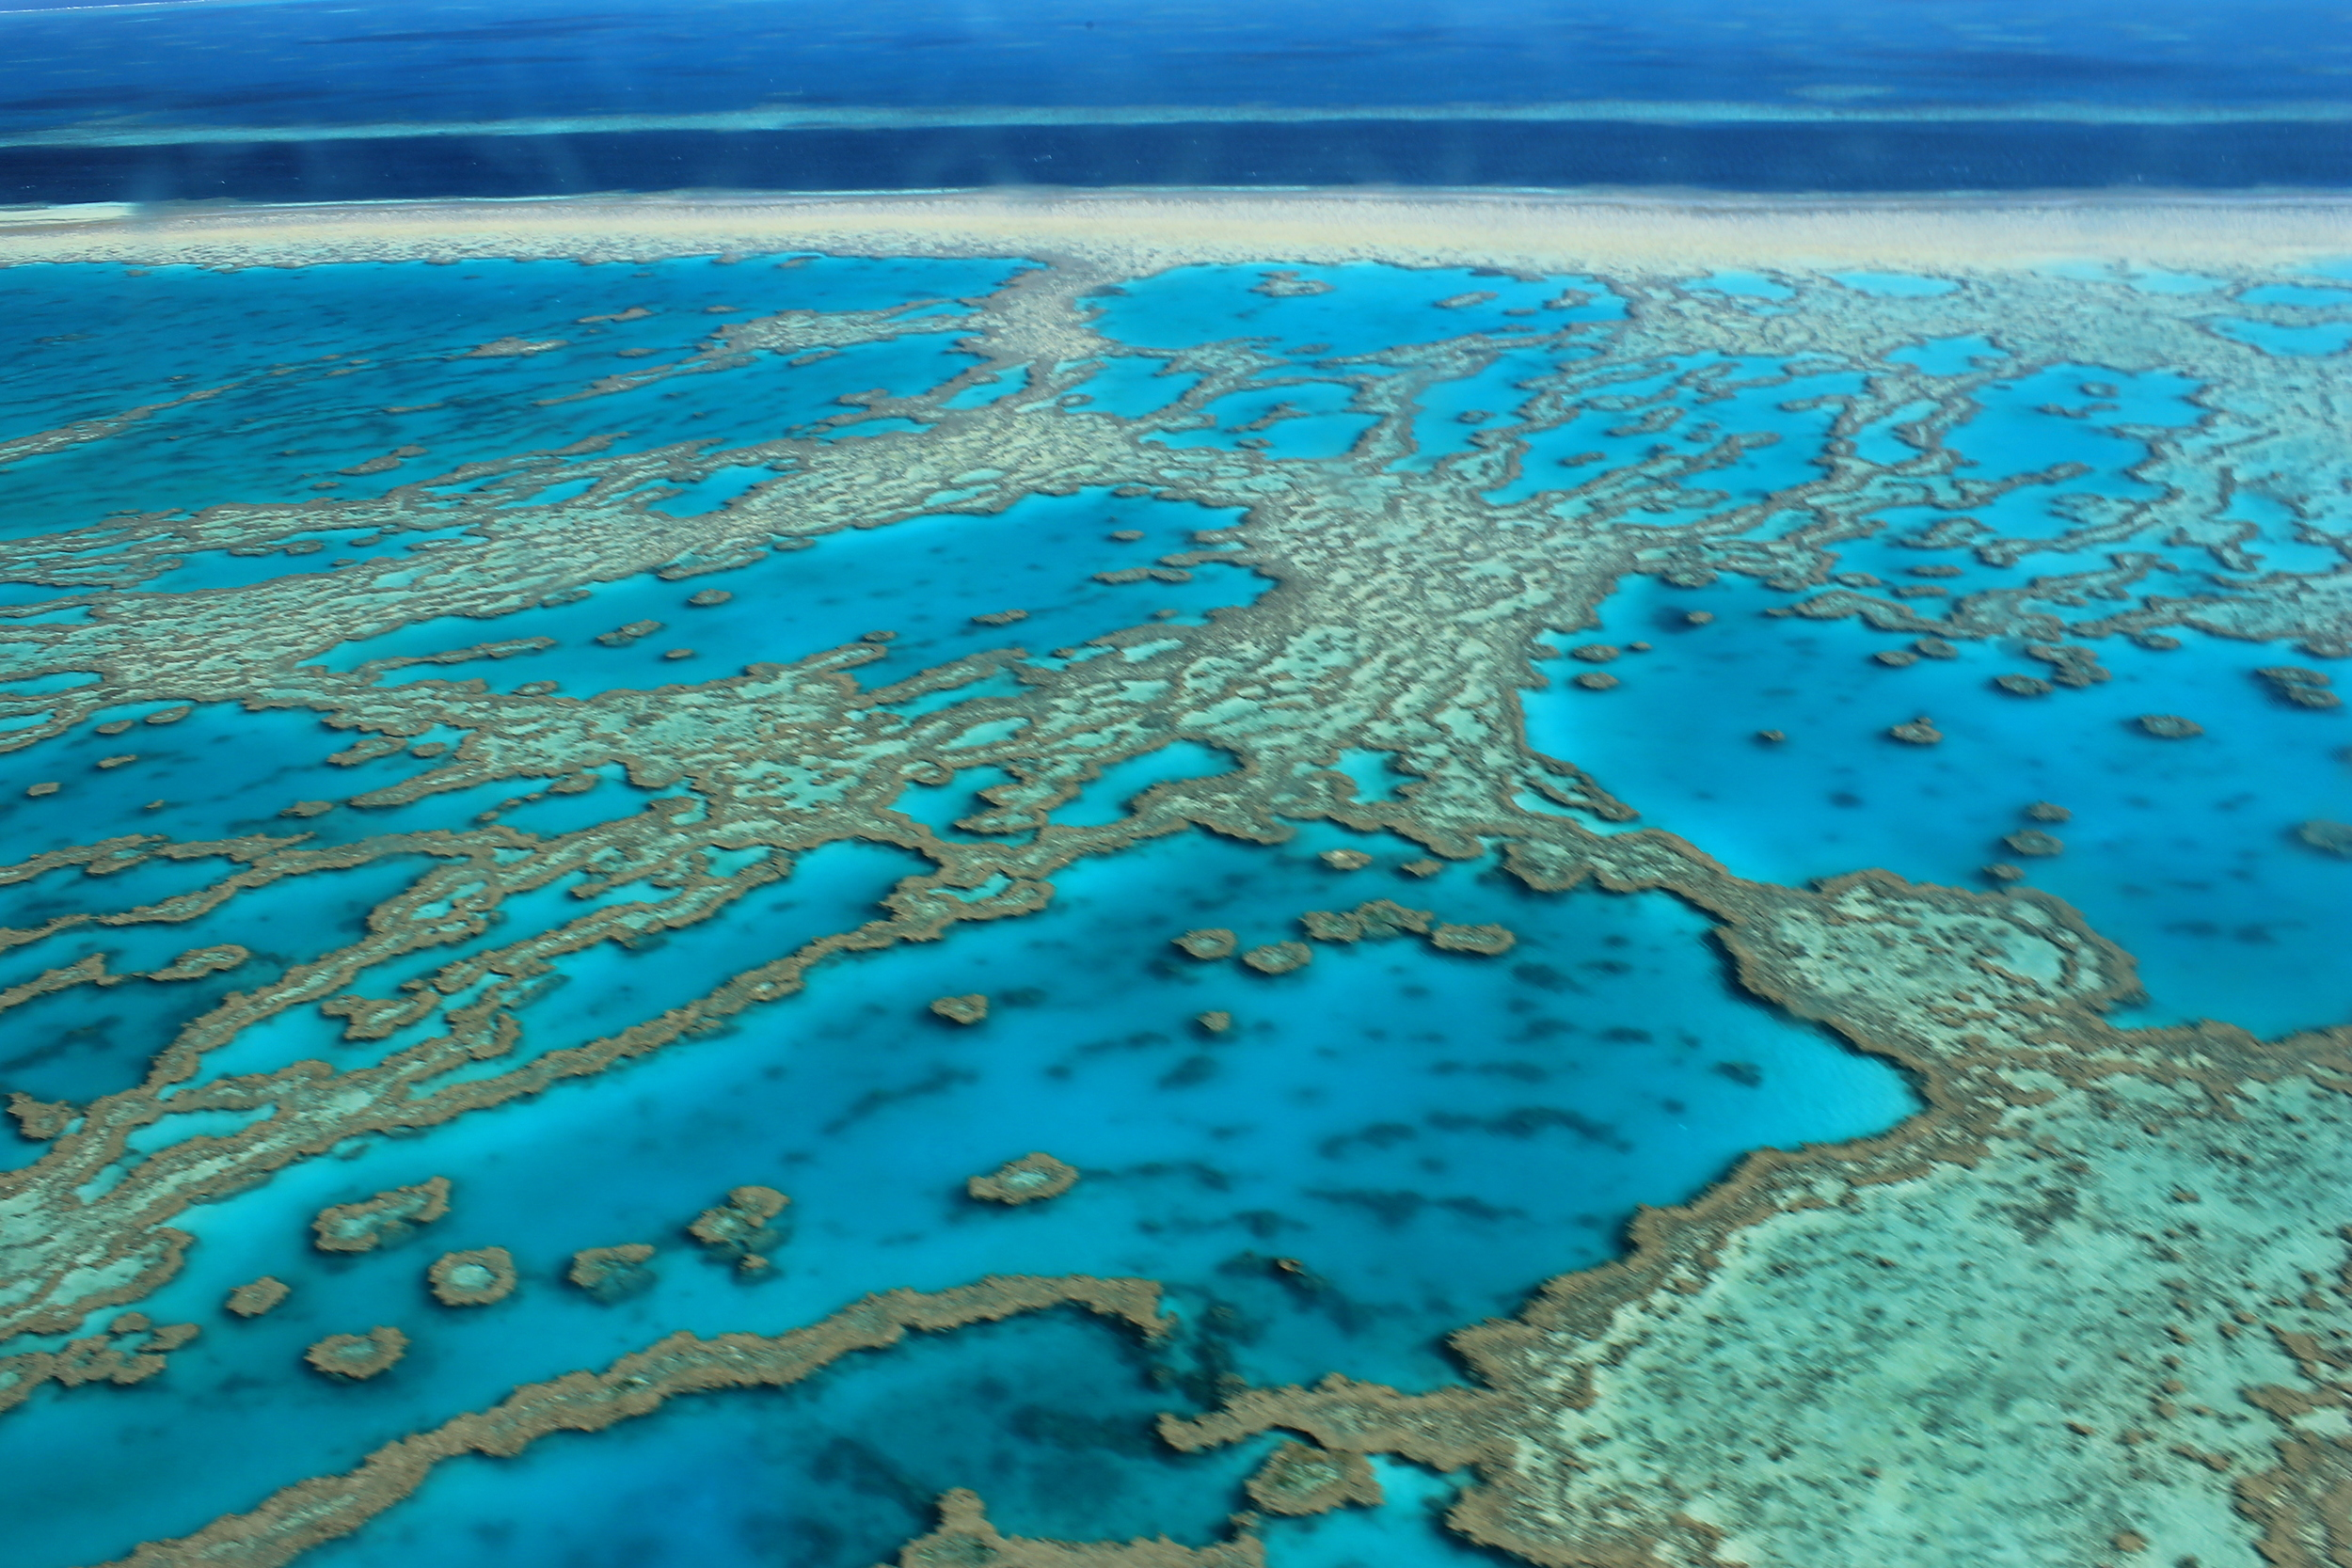 The Great Barrier Reef has experienced bleaching recently, and both major political parties have promised funding for the reef.  FarbenfroheWunderwelt/Flickr  (CC BY-ND)